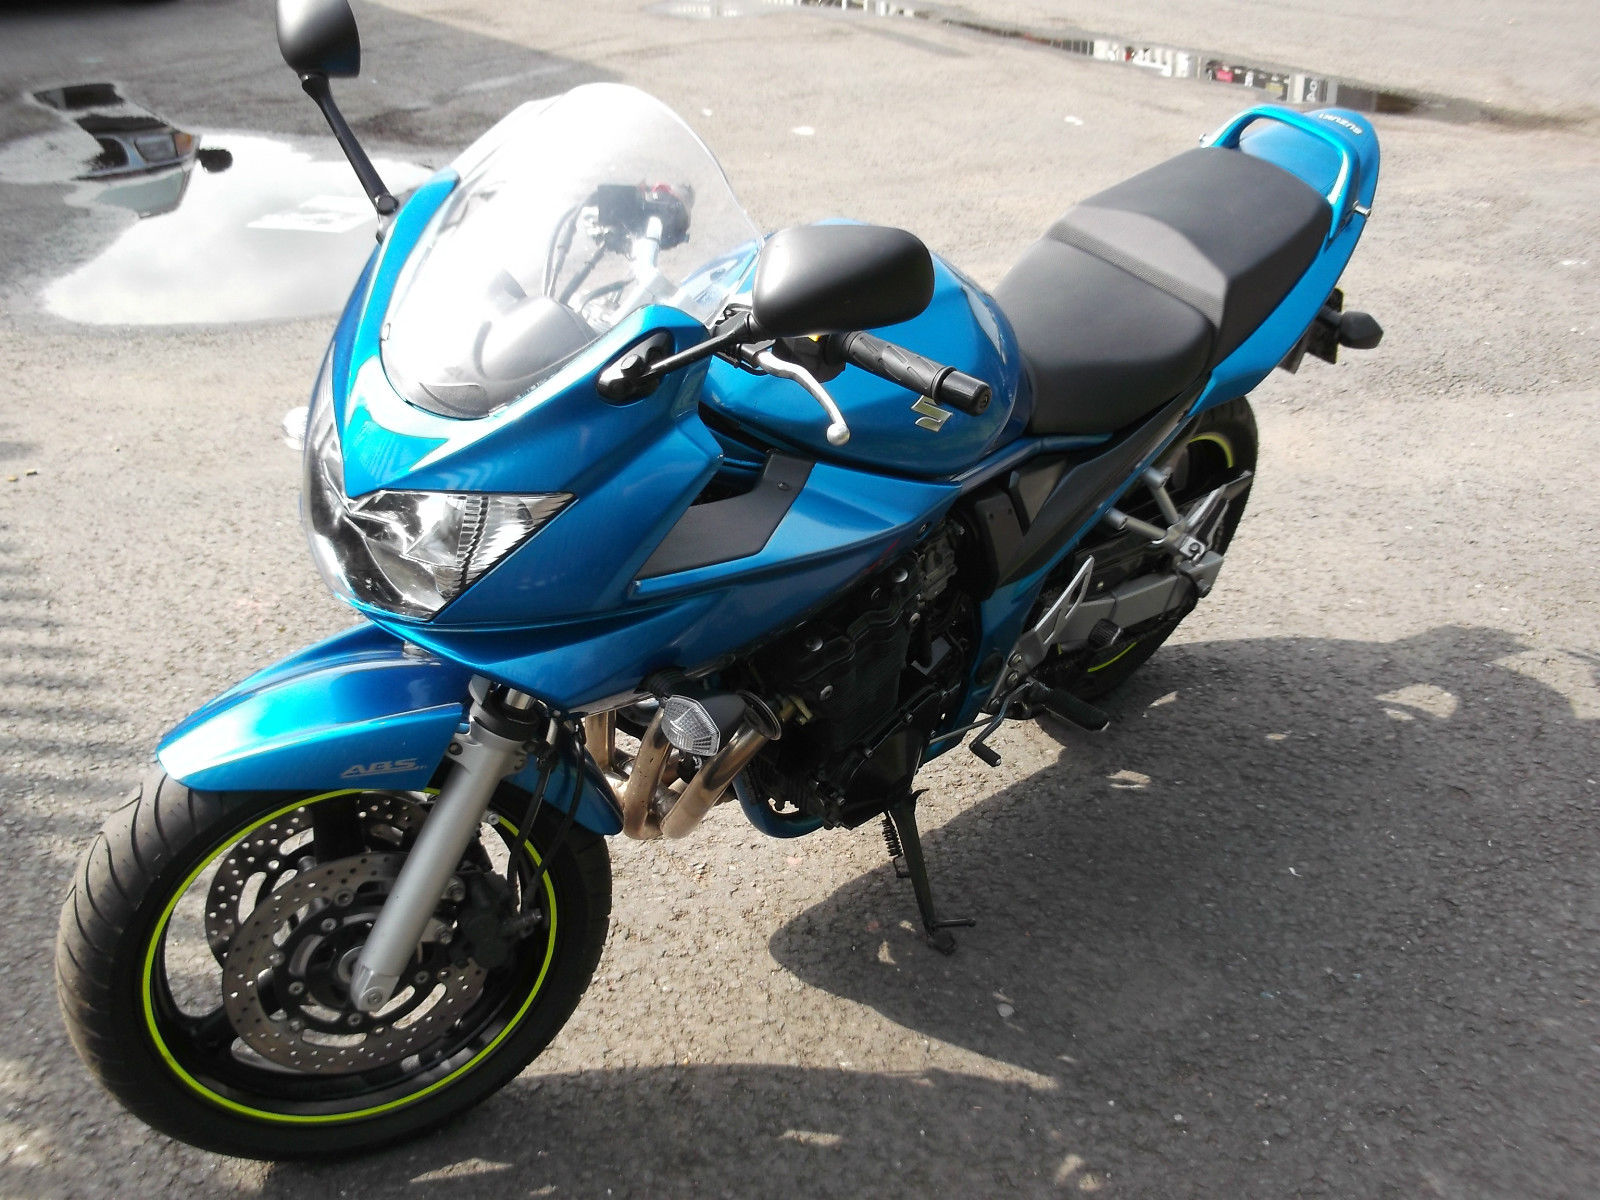 Suzuki Bandit 650 Gsf K6 Sa 2007 Abs Model One Owner Only 6749 Miles Fsh